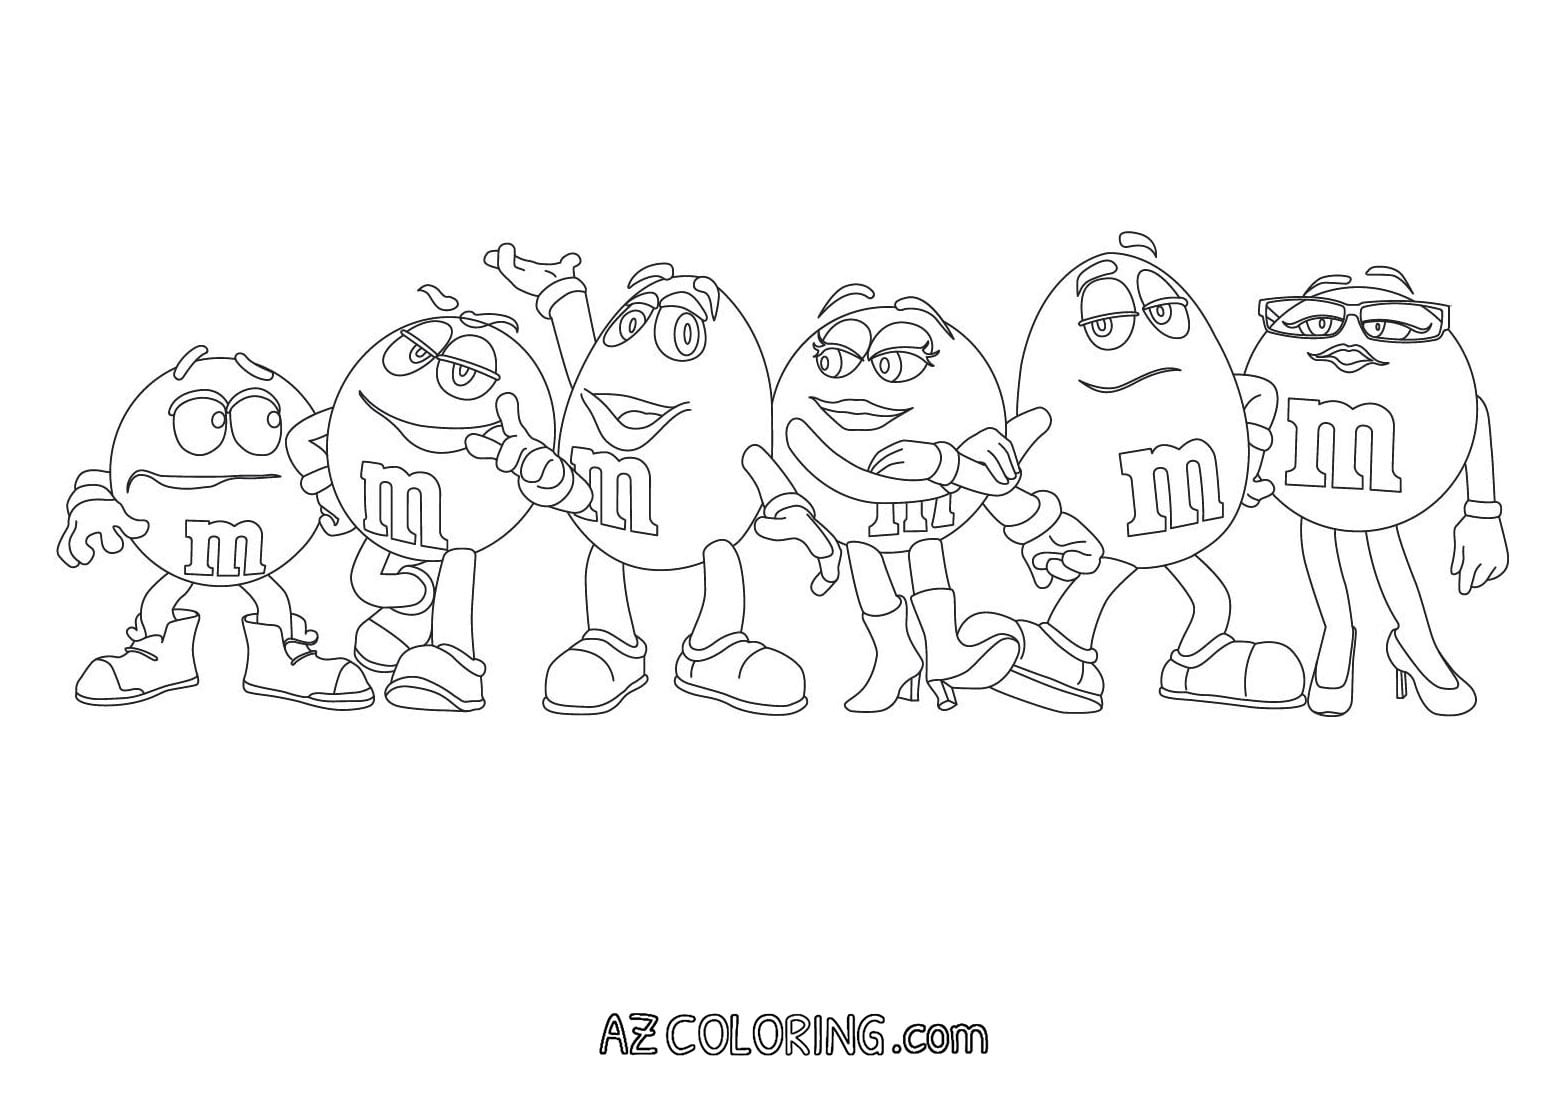 M Coloring Page Home Lovely Pages Robertjhastings Coloring For